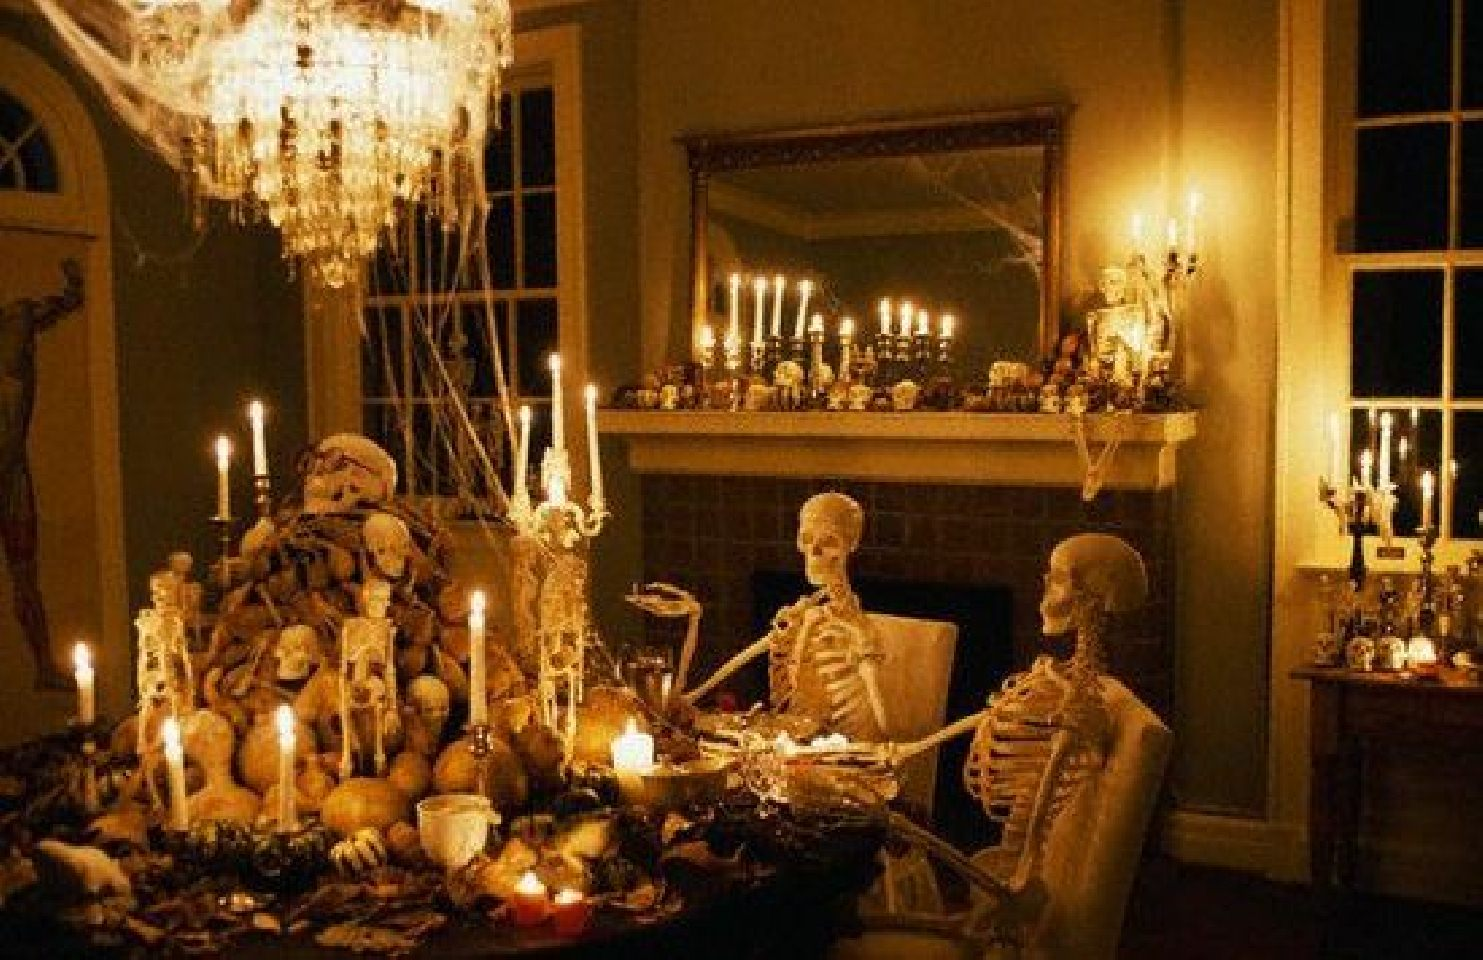 House Decoration Ideas 2016 For Halloween Party &amp Lighting - Spooky Halloween Props